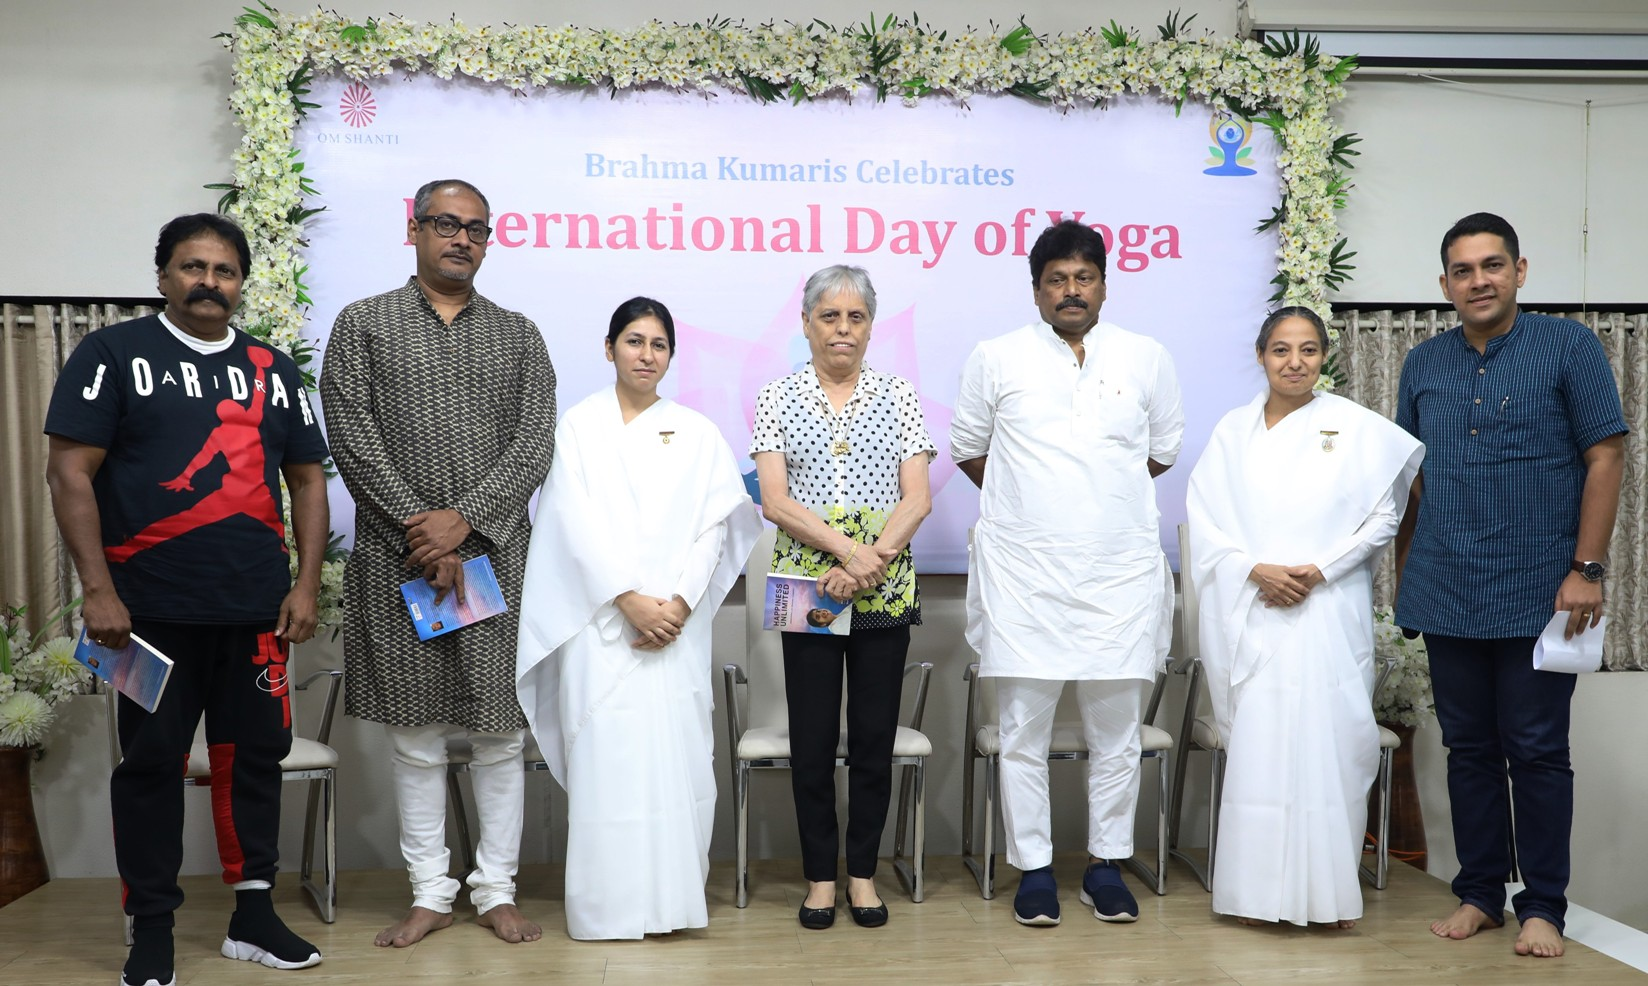 Brahma Kumaris celebrated 'International Yoga Day' with martial art expert Chitah Yajnesh Shetty